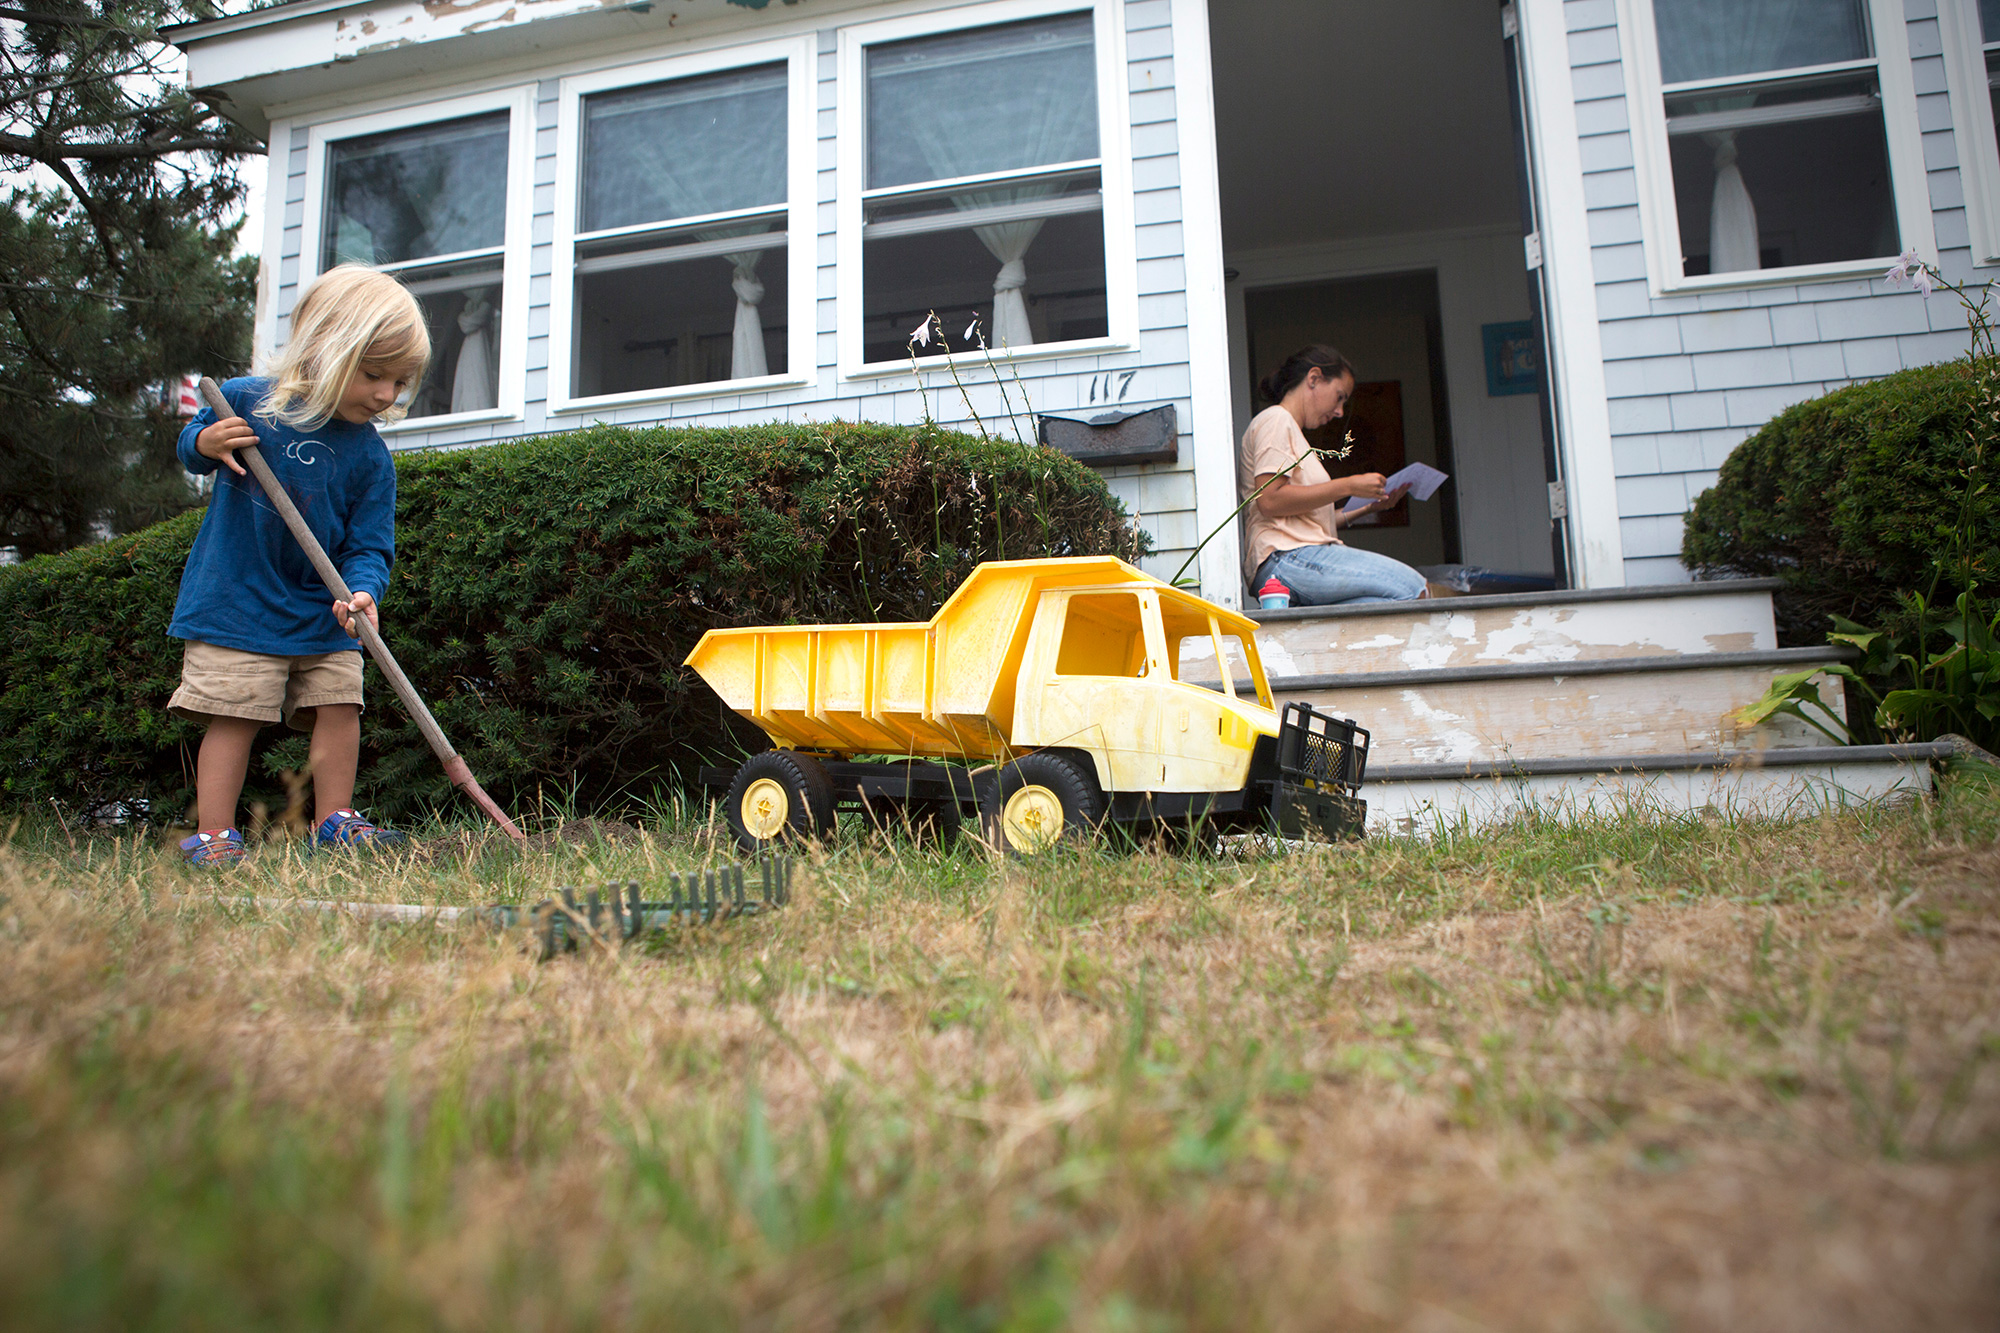 Scituate resident Devon Barrie and her son, Kailub Sullivan, live along the beach in Scituate near the new town seawall under construction. Sullivan likes to imitate the working crew with a toy dump truck, moving dirt from one side of the yard to the other. (Photo by Lauren Owens Lambert/GroundTruth)